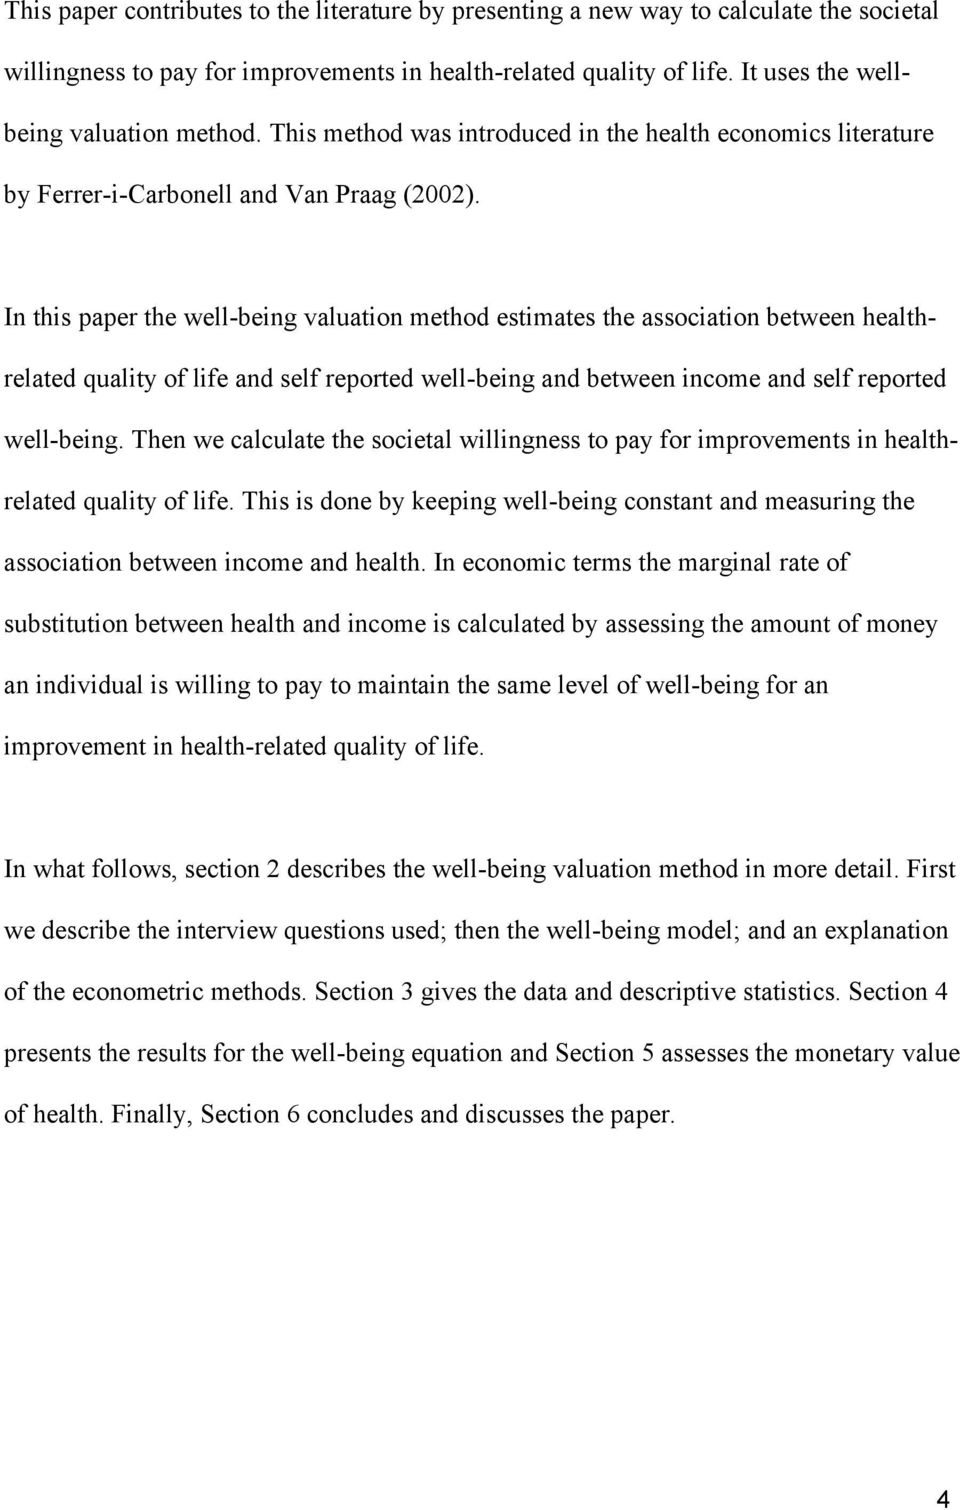 In this paper the well-being valuation method estimates the association between healthrelated quality of life and self reported well-being and between income and self reported well-being.